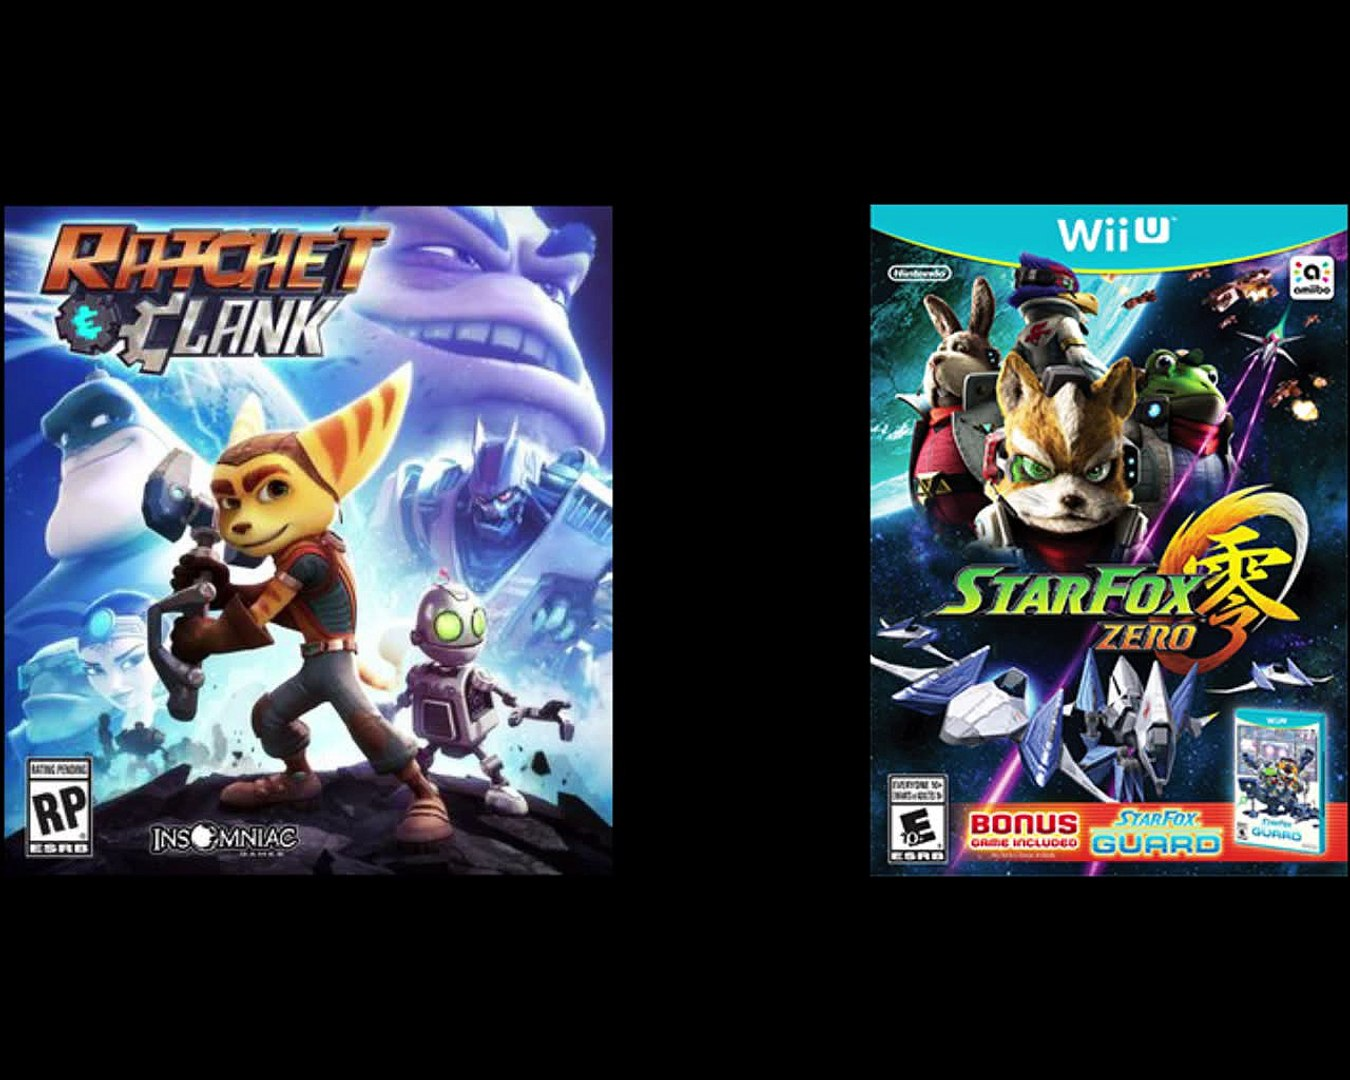 Media Hunter - Ratchet and Clank (2016) and Star Fox Zero Review